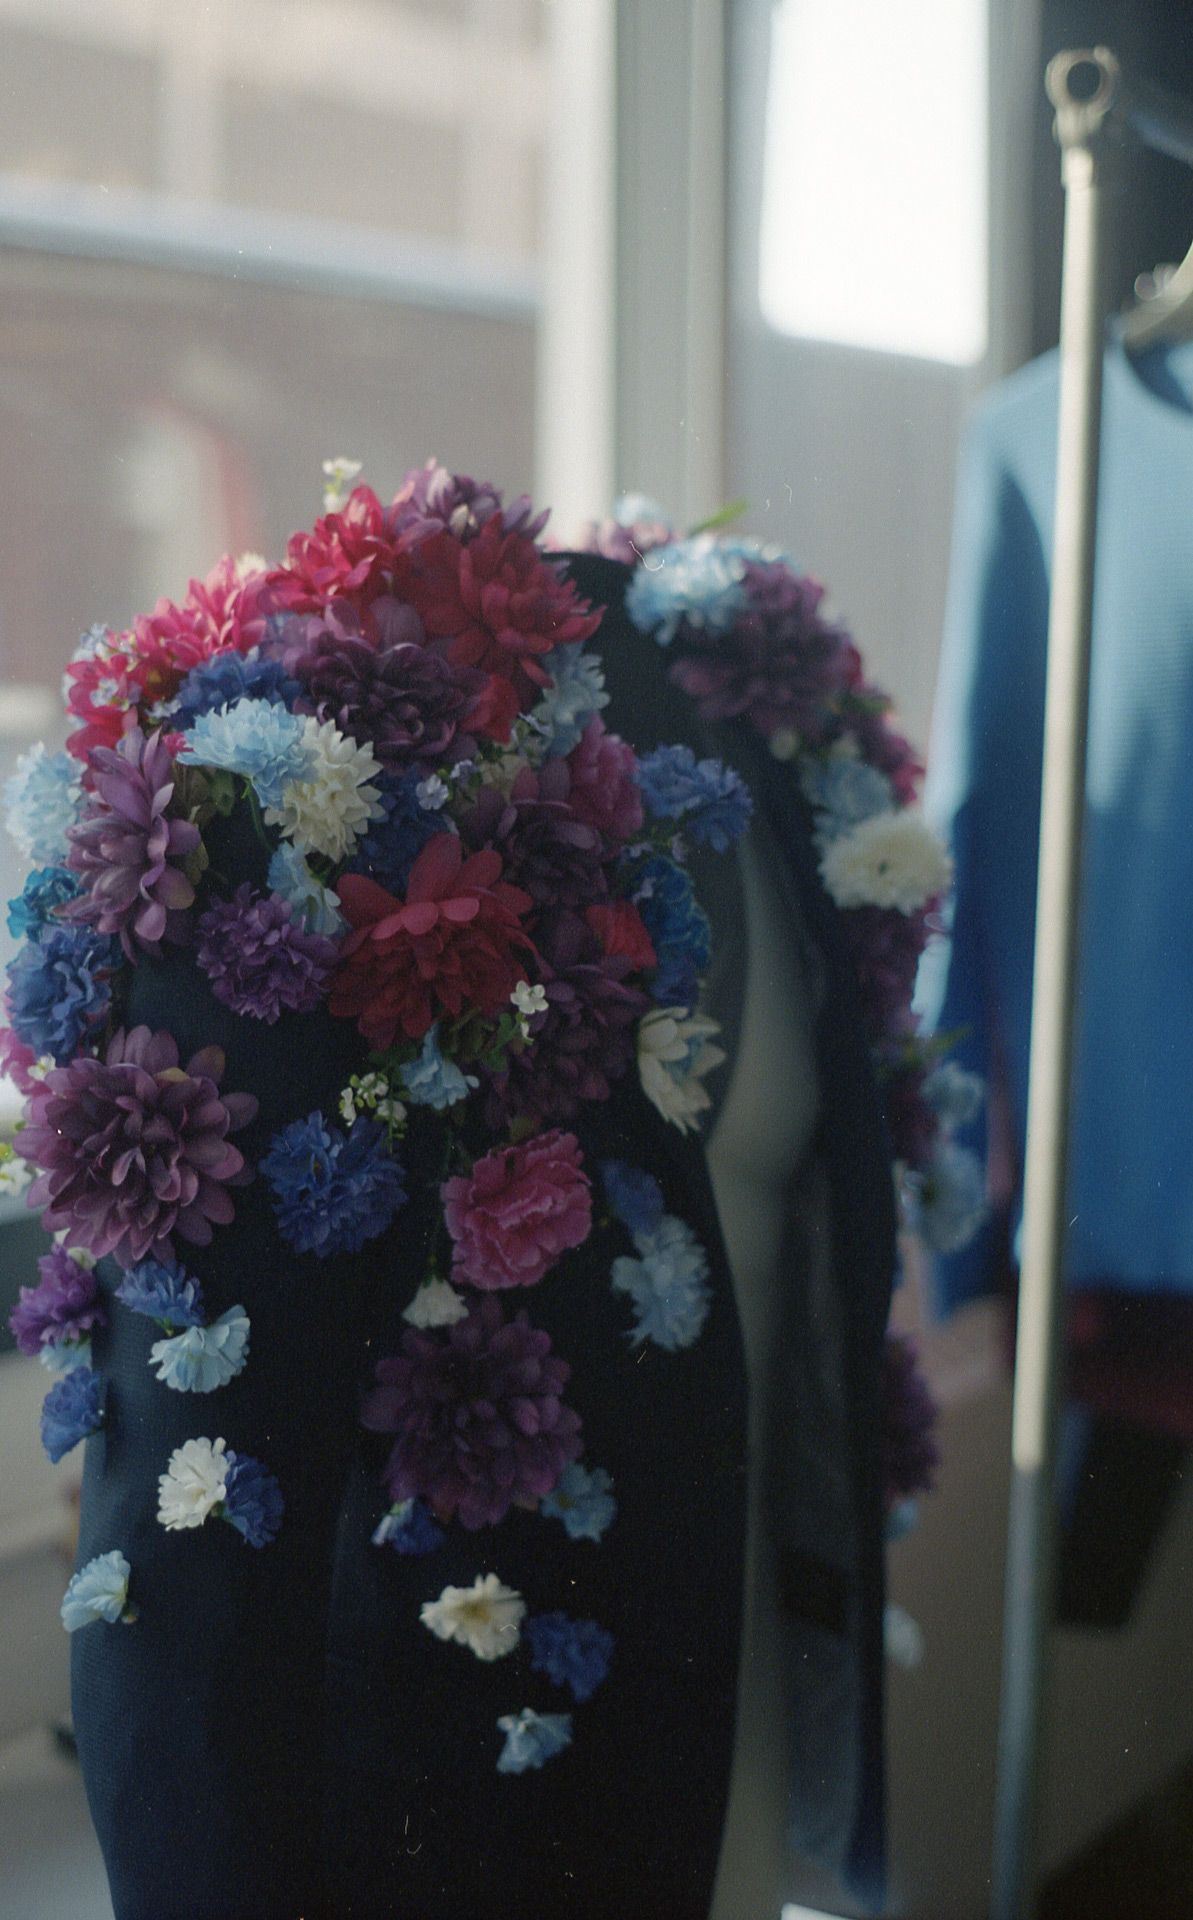 suit jacket covered in fake flowers created by Studio TB for Nouveau Projet 17 with Jean Michel Blais